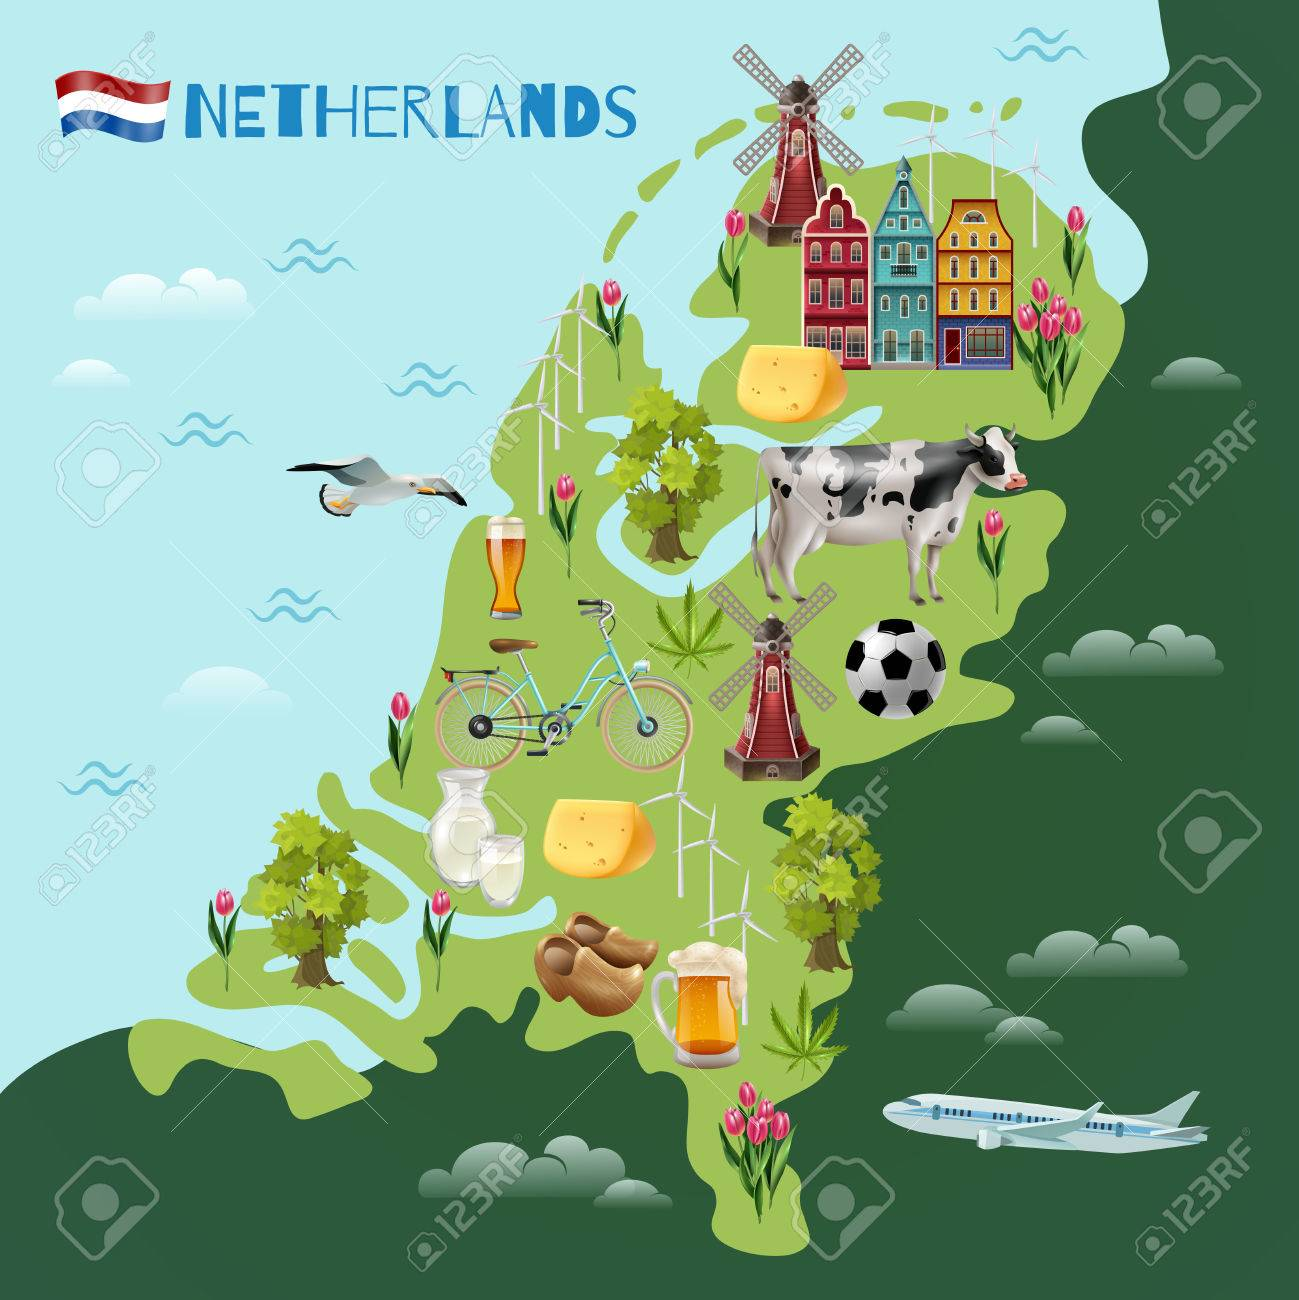 Holland travel sightseeing map with culture traditions national holland travel sightseeing map with culture traditions national cheese beer clogs tulips and windmills symbols gumiabroncs